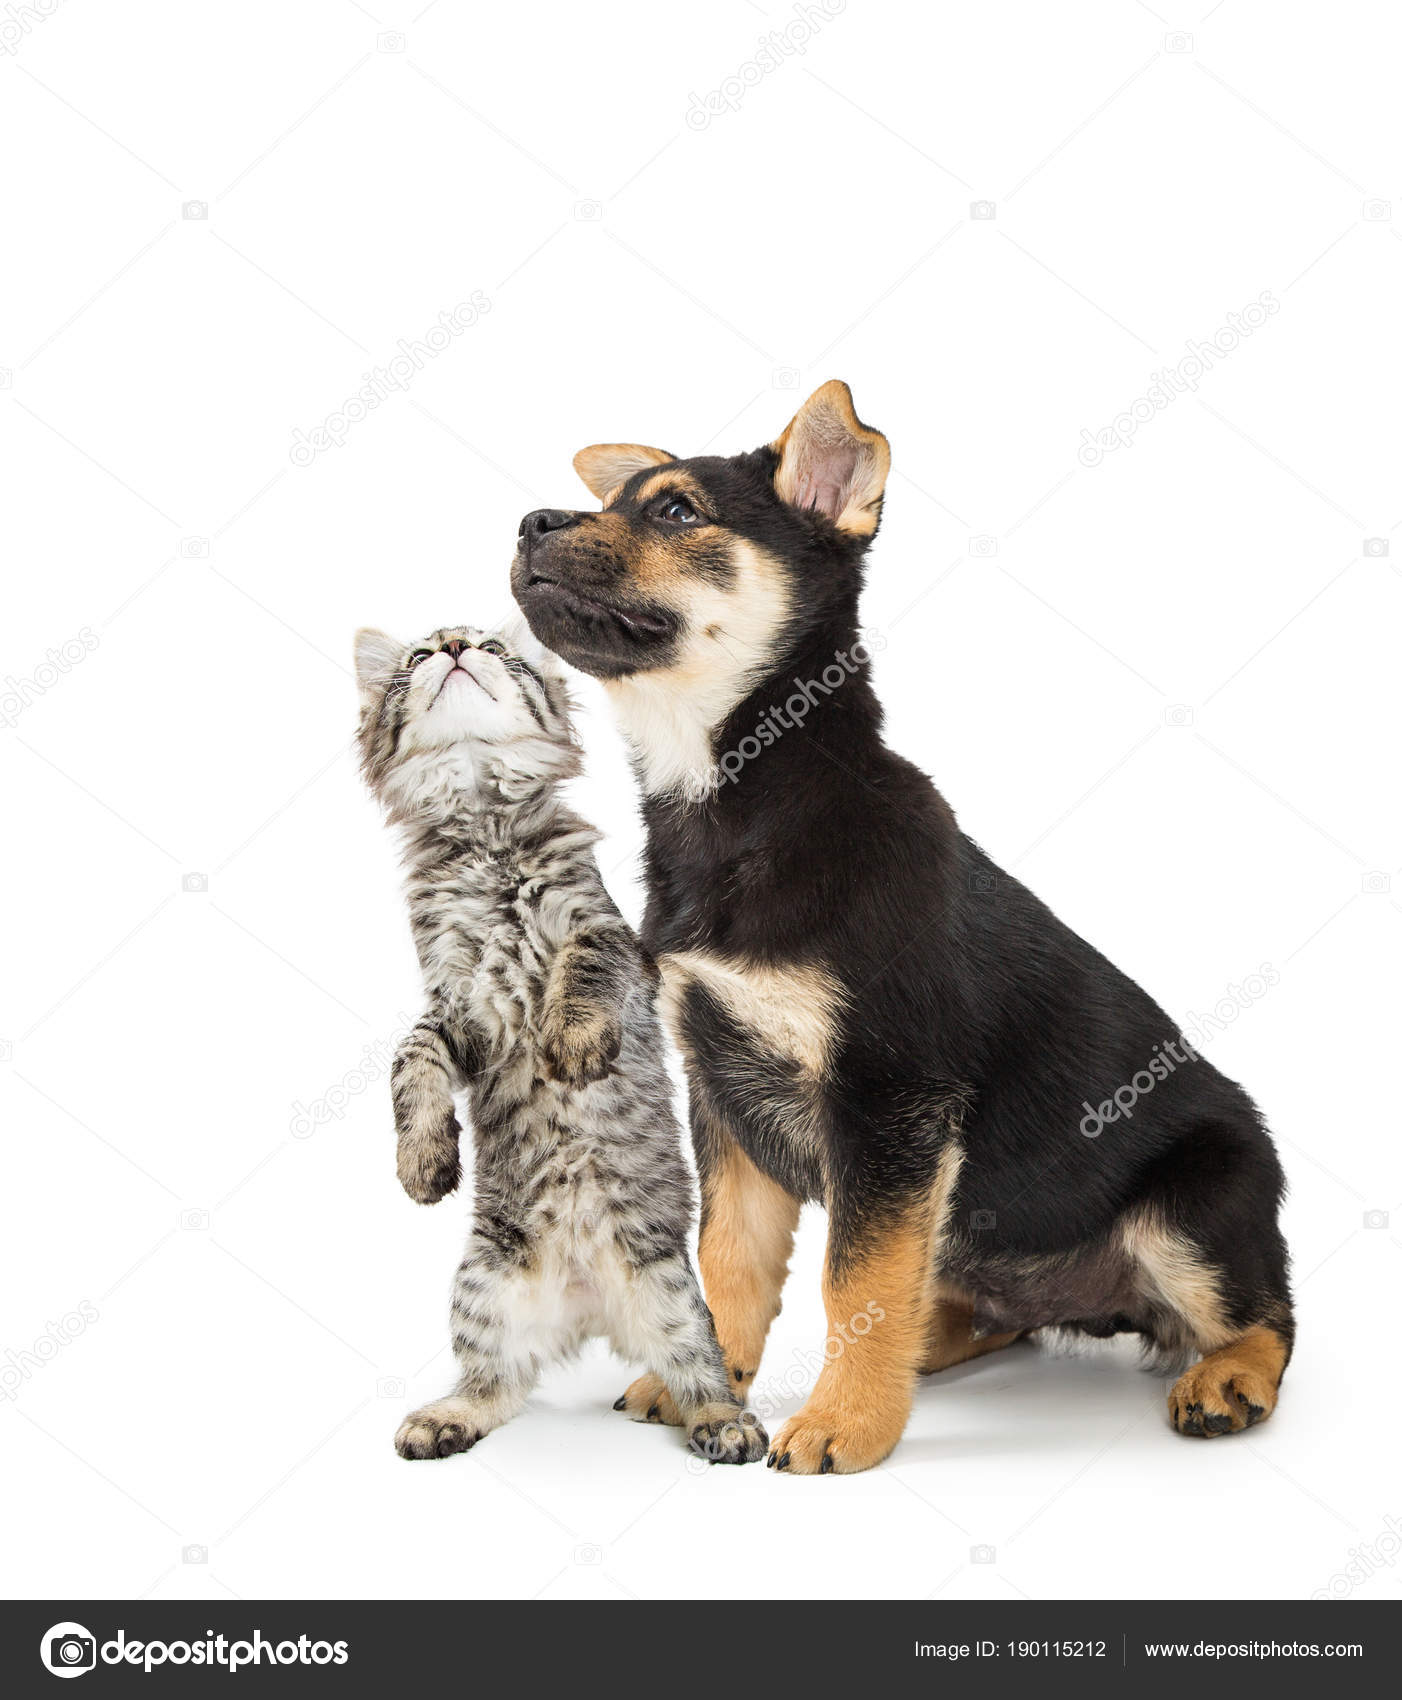 cute puppy kitten together white looking blank white room text